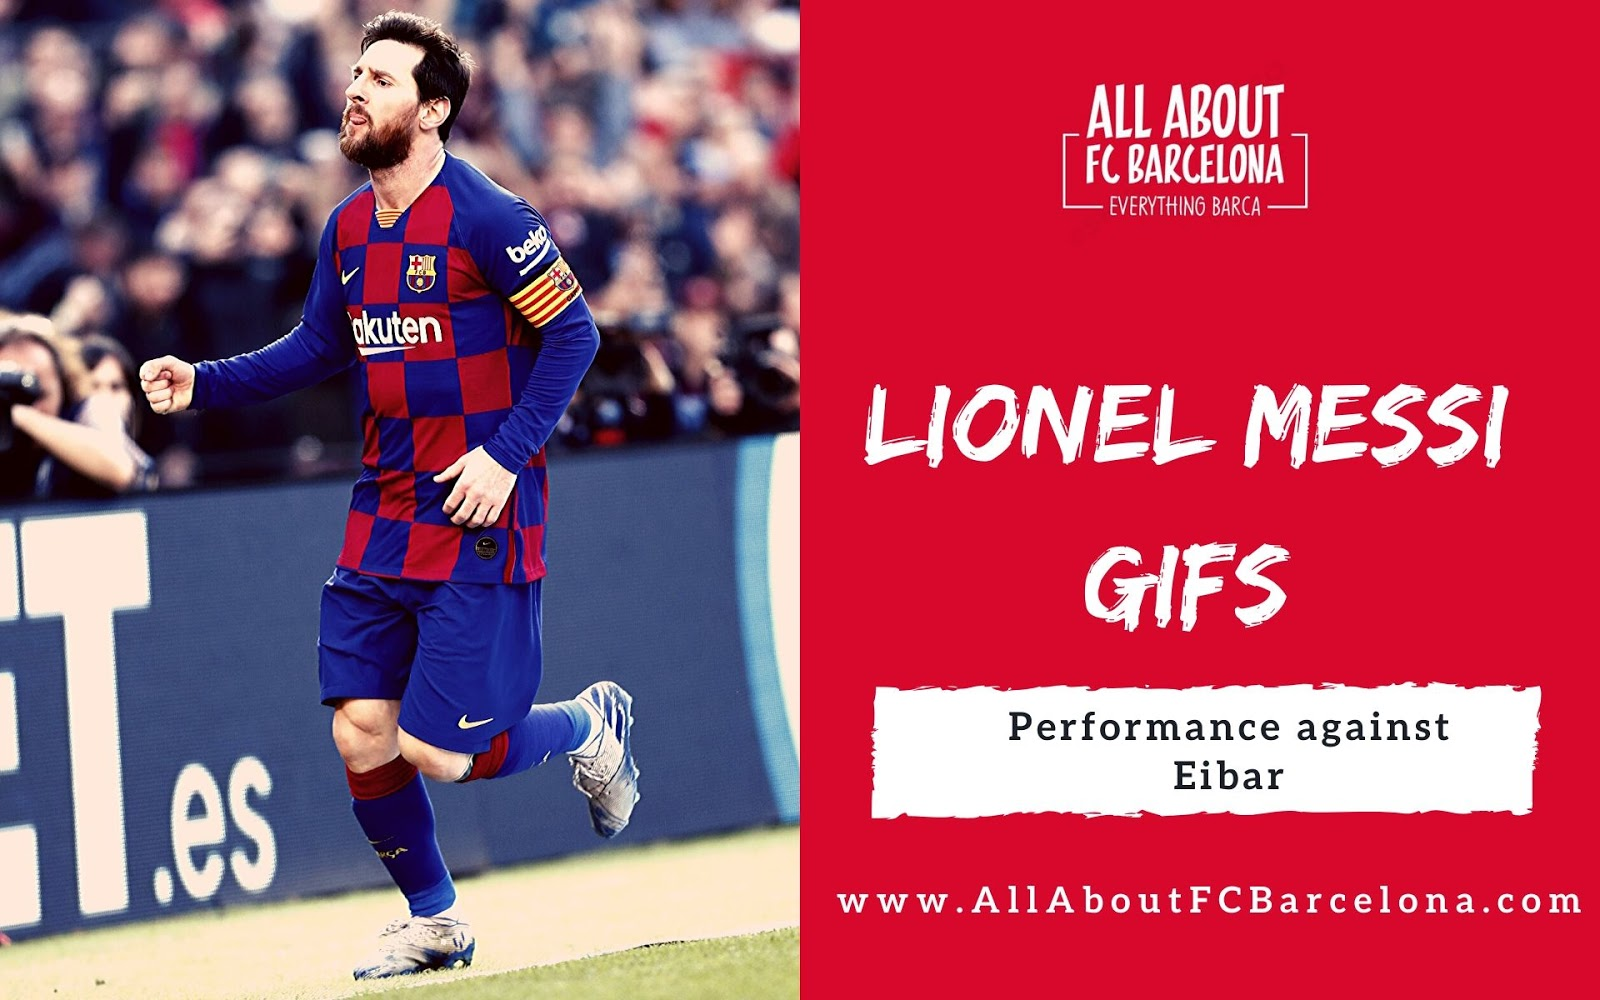 Lionel Messi Five Star Performance Against Eibar In Gifs Barca Images Gifs